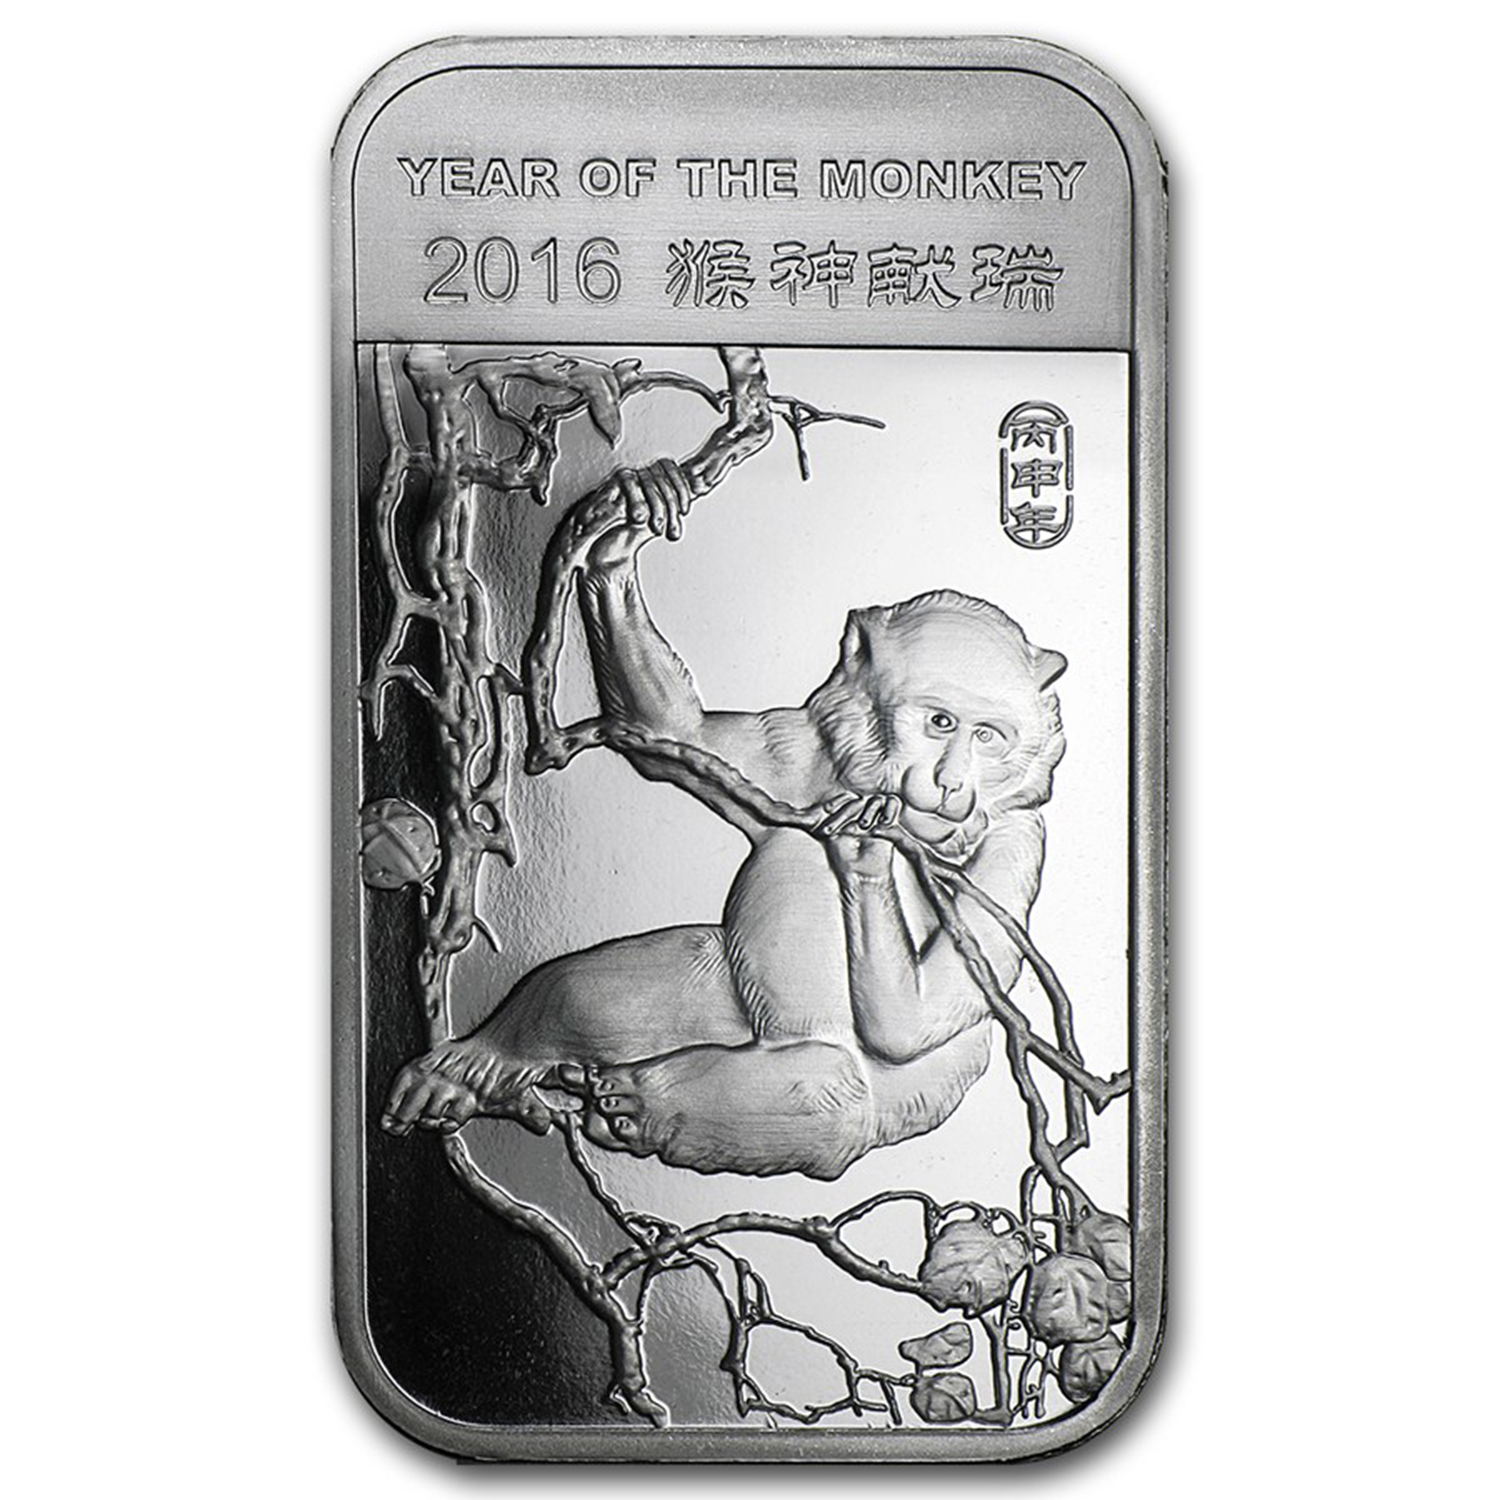 1 oz Silver Bar - APMEX (2016 Year of the Monkey)